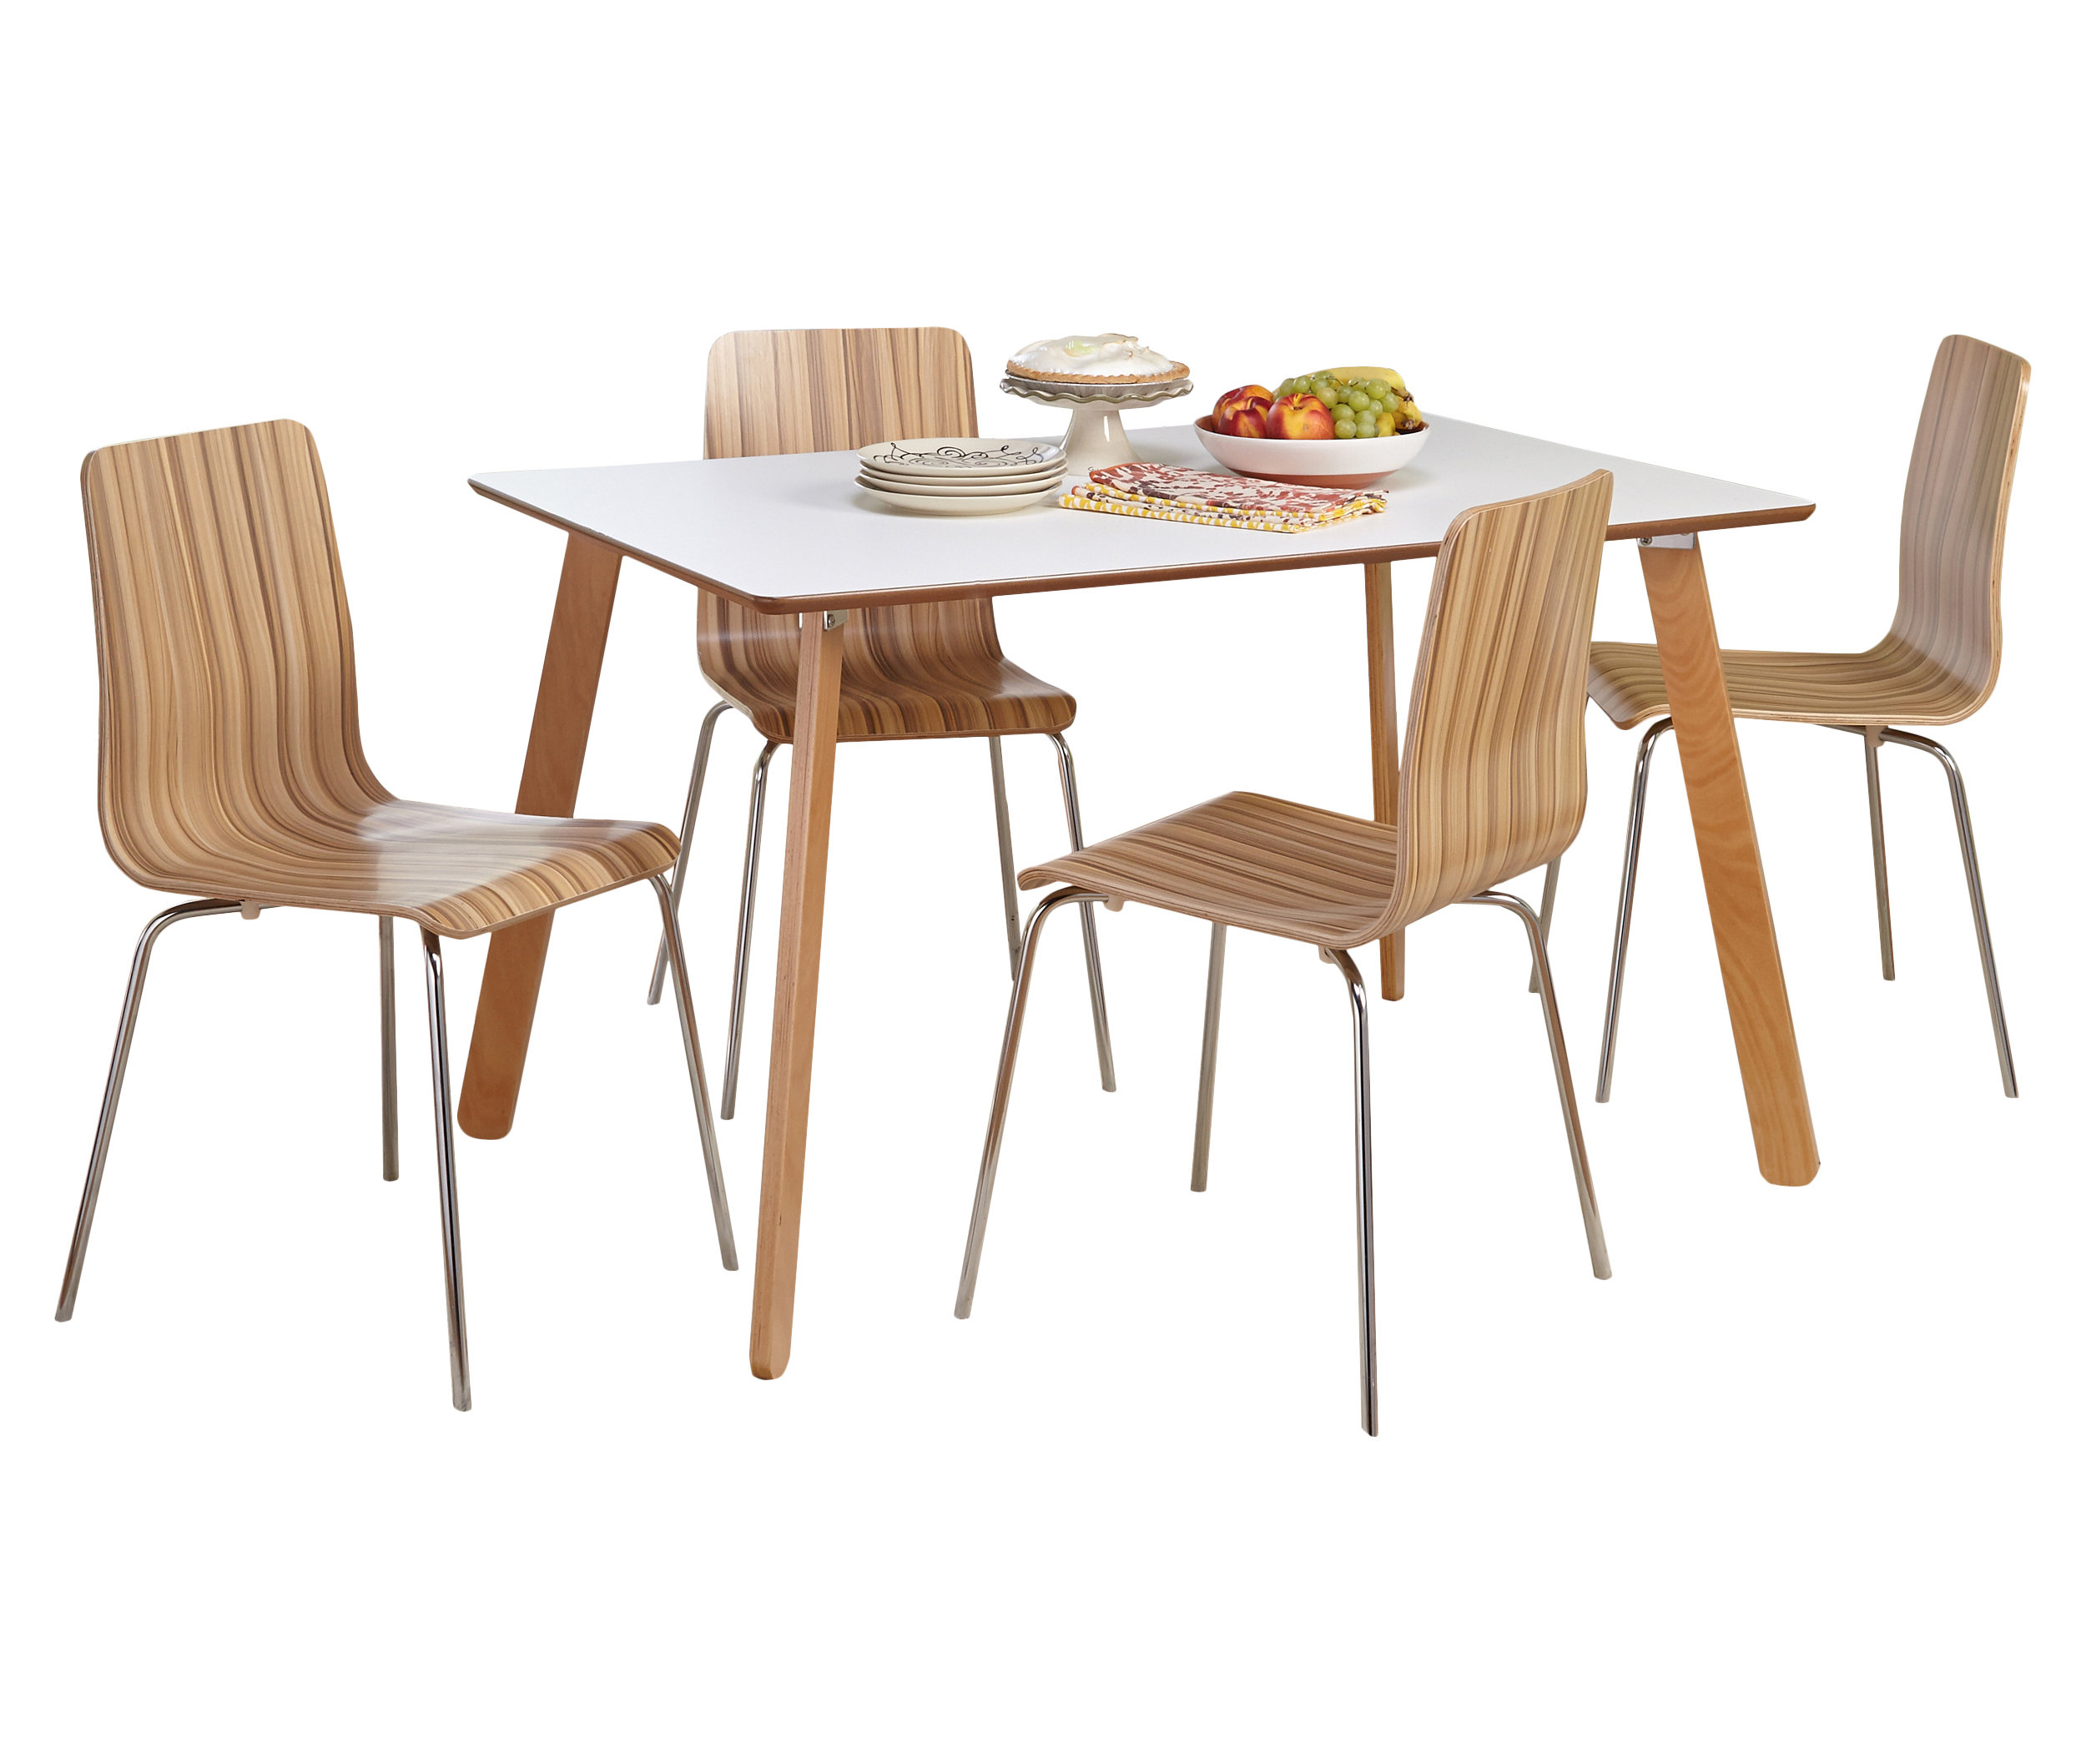 Jaqueline 5 Piece Dining Set With Regard To Most Popular Lillard 3 Piece Breakfast Nook Dining Sets (Image 9 of 20)